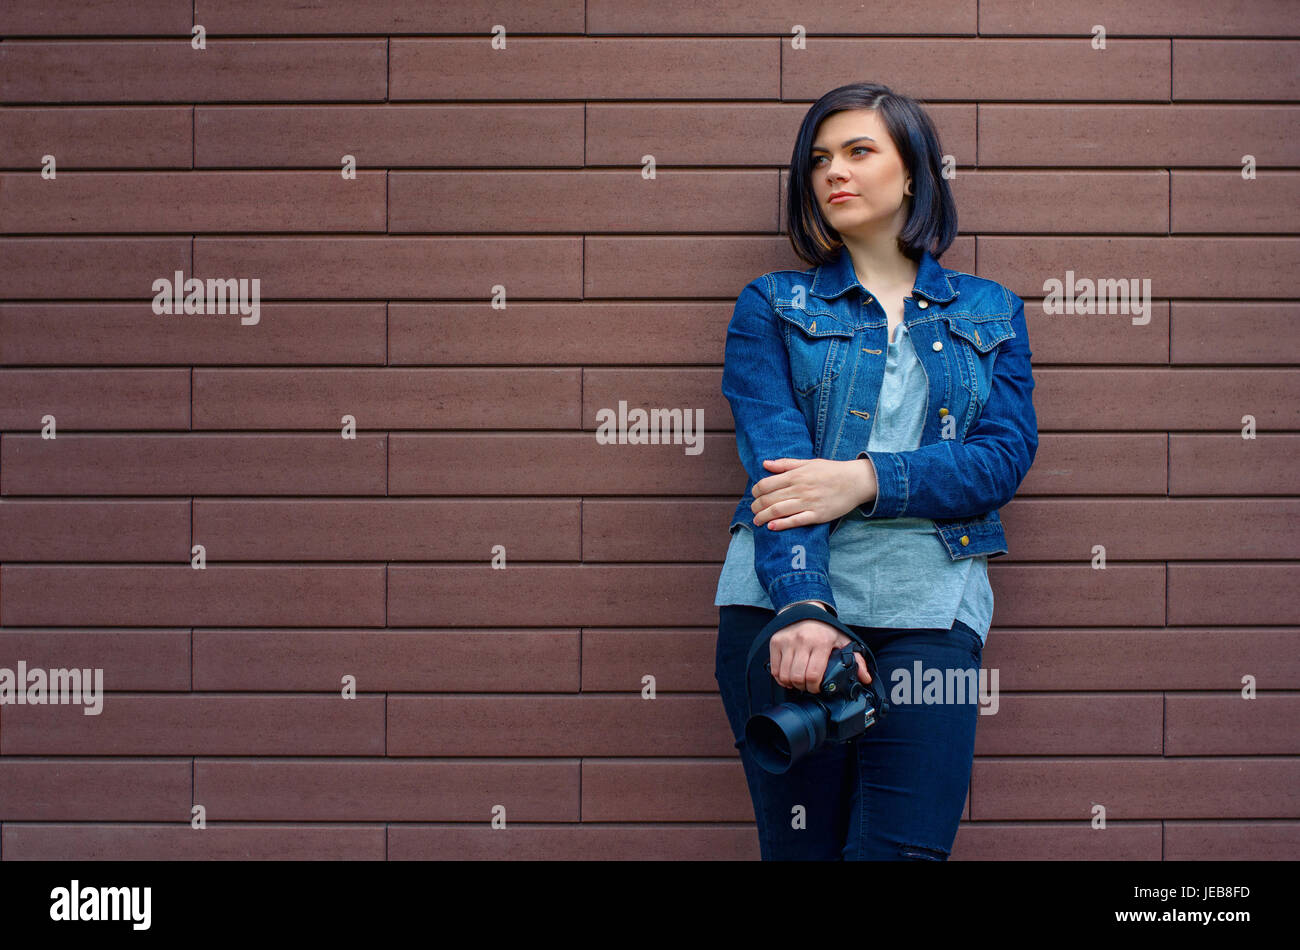 Thoughtful brunette caucasian girl  in a blue jeans jacket with digital camera in hands near a brown  textured brick - Stock Image